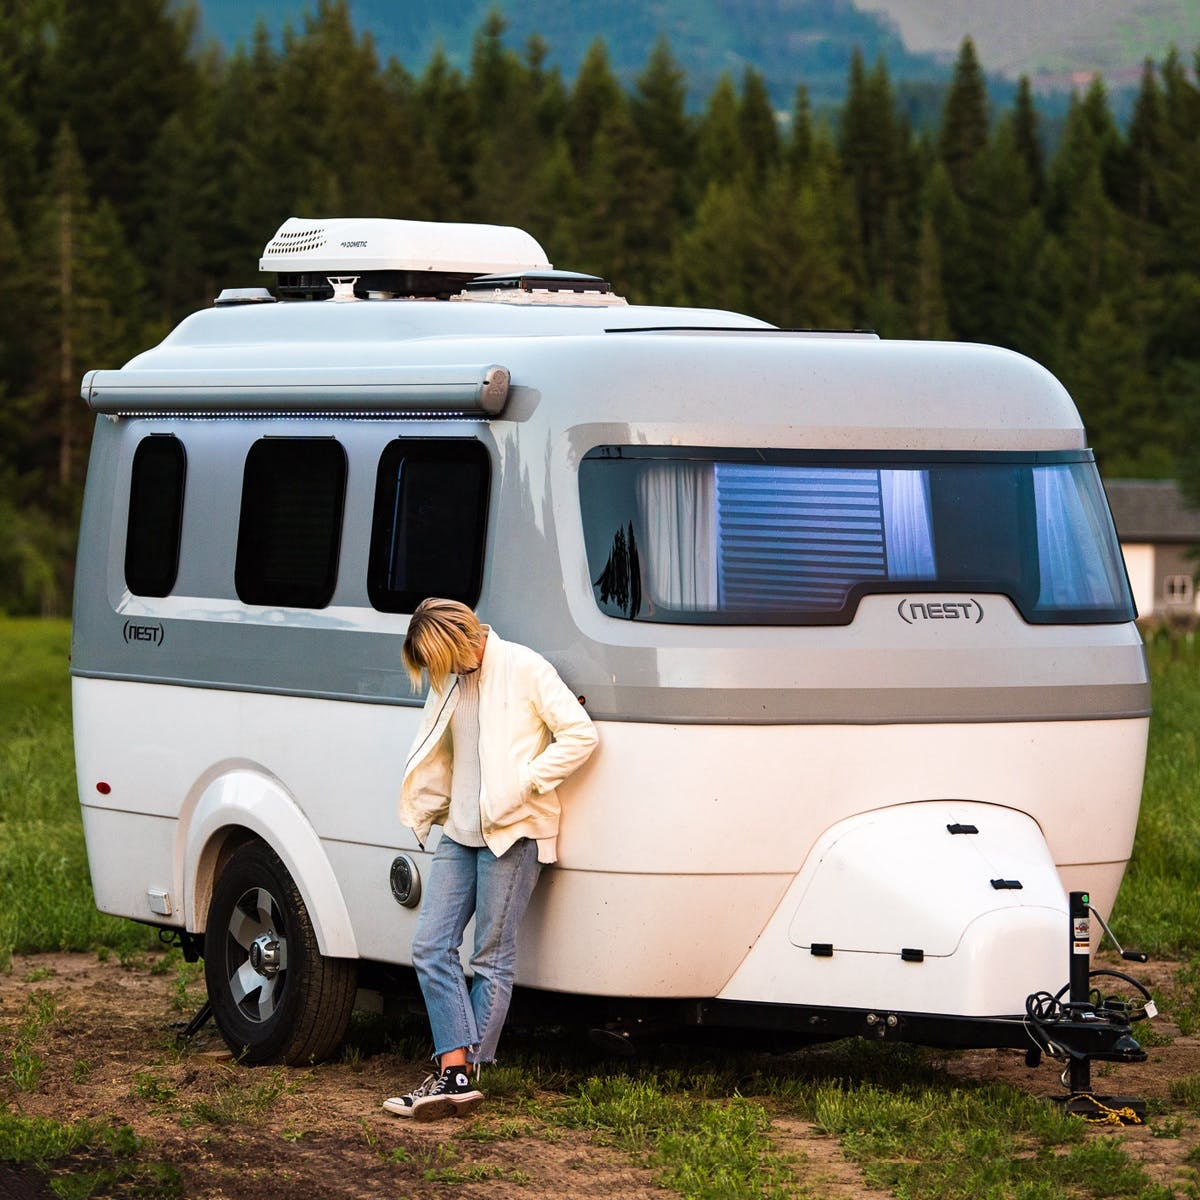 Nest by Airstream laura austin clean simple modern nature travel